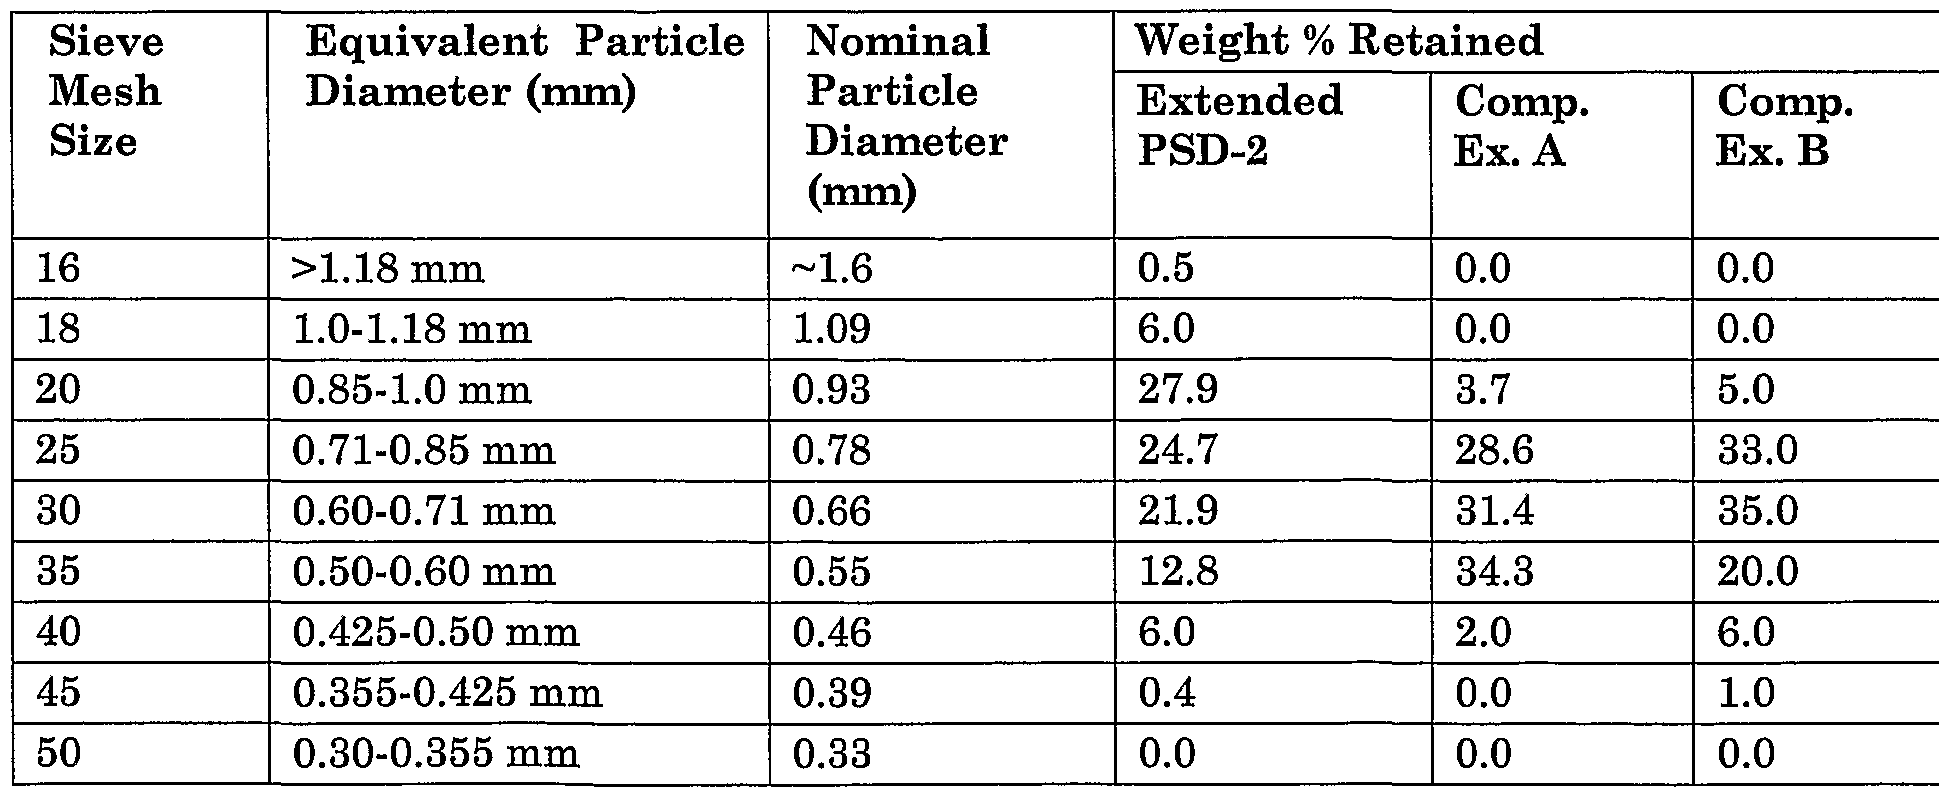 Patent ep1590309a4 extended particle size distribution ceramic figure imgf0000230001 nvjuhfo Image collections